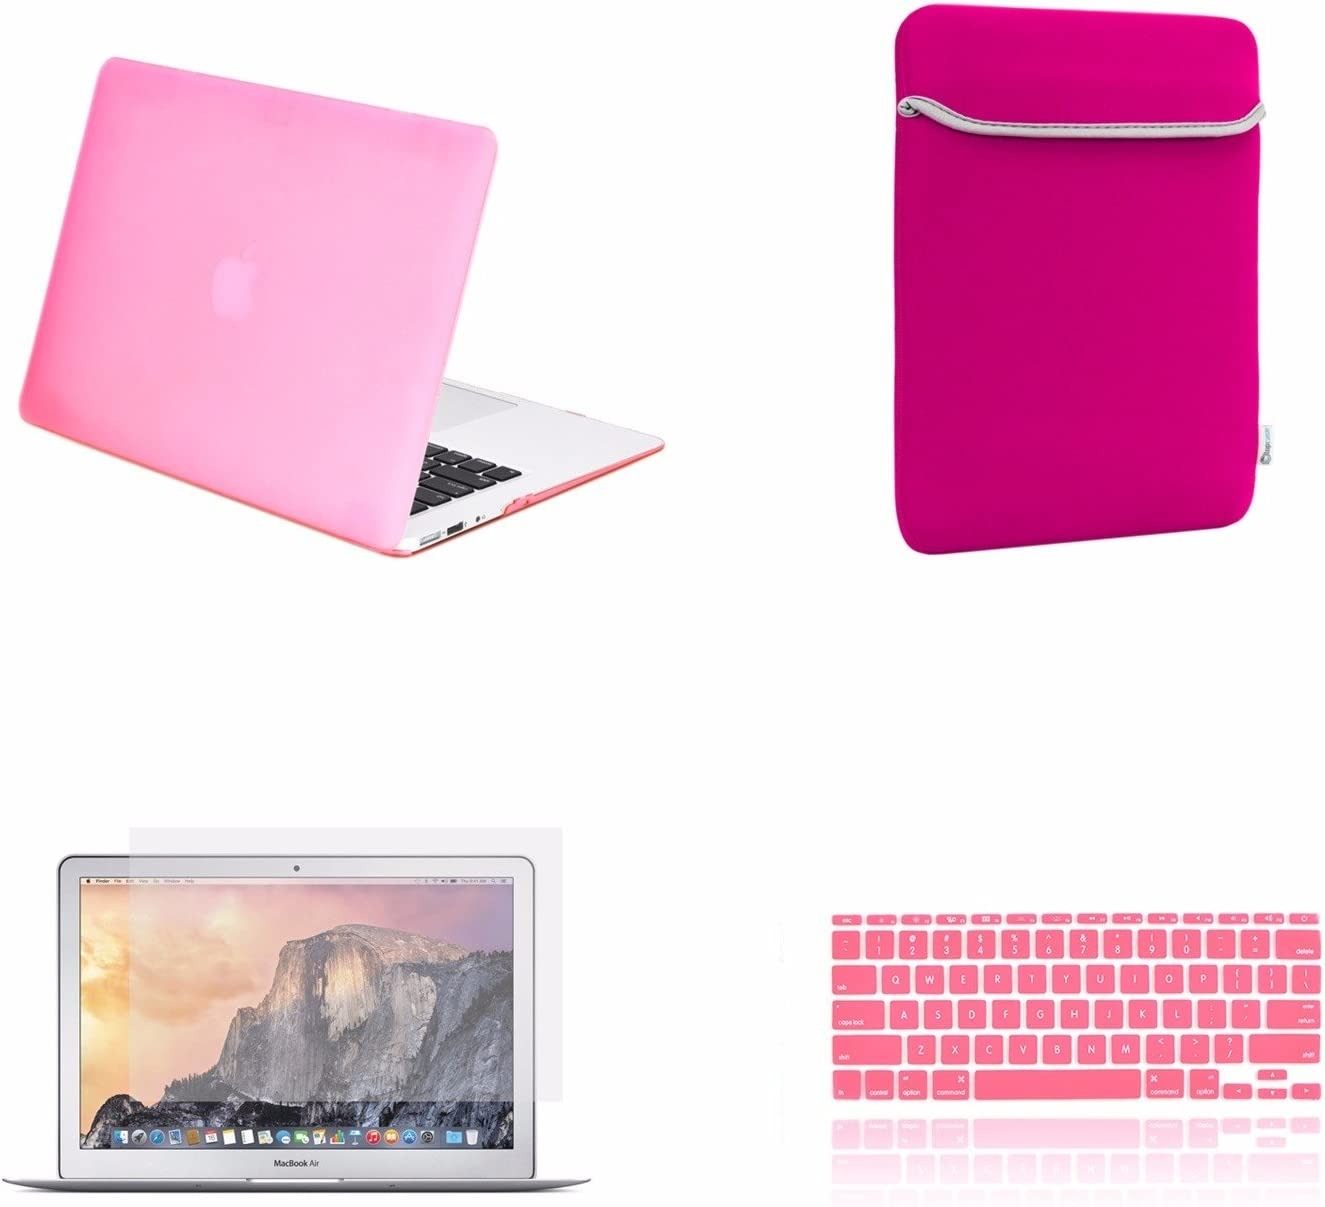 TOP CASE - 4 in 1 Essential Bundle Rubberized Hard Case, Keyboard Cover, Screen Protector and Sleeve Bag Compatible MacBook Air 11